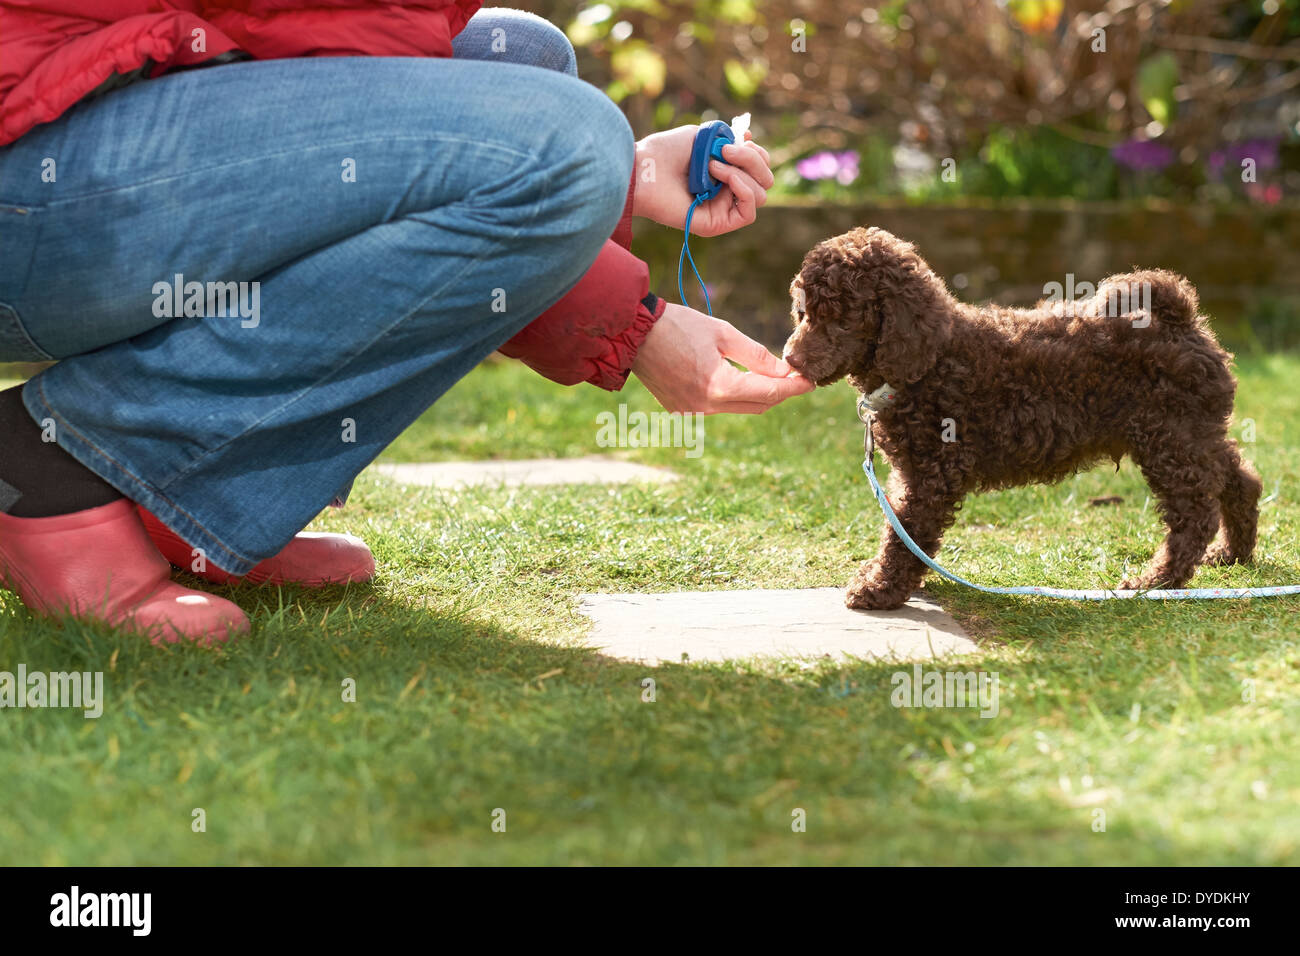 Lead and clicker training for a miniature poodle puppy in the garden. - Stock Image